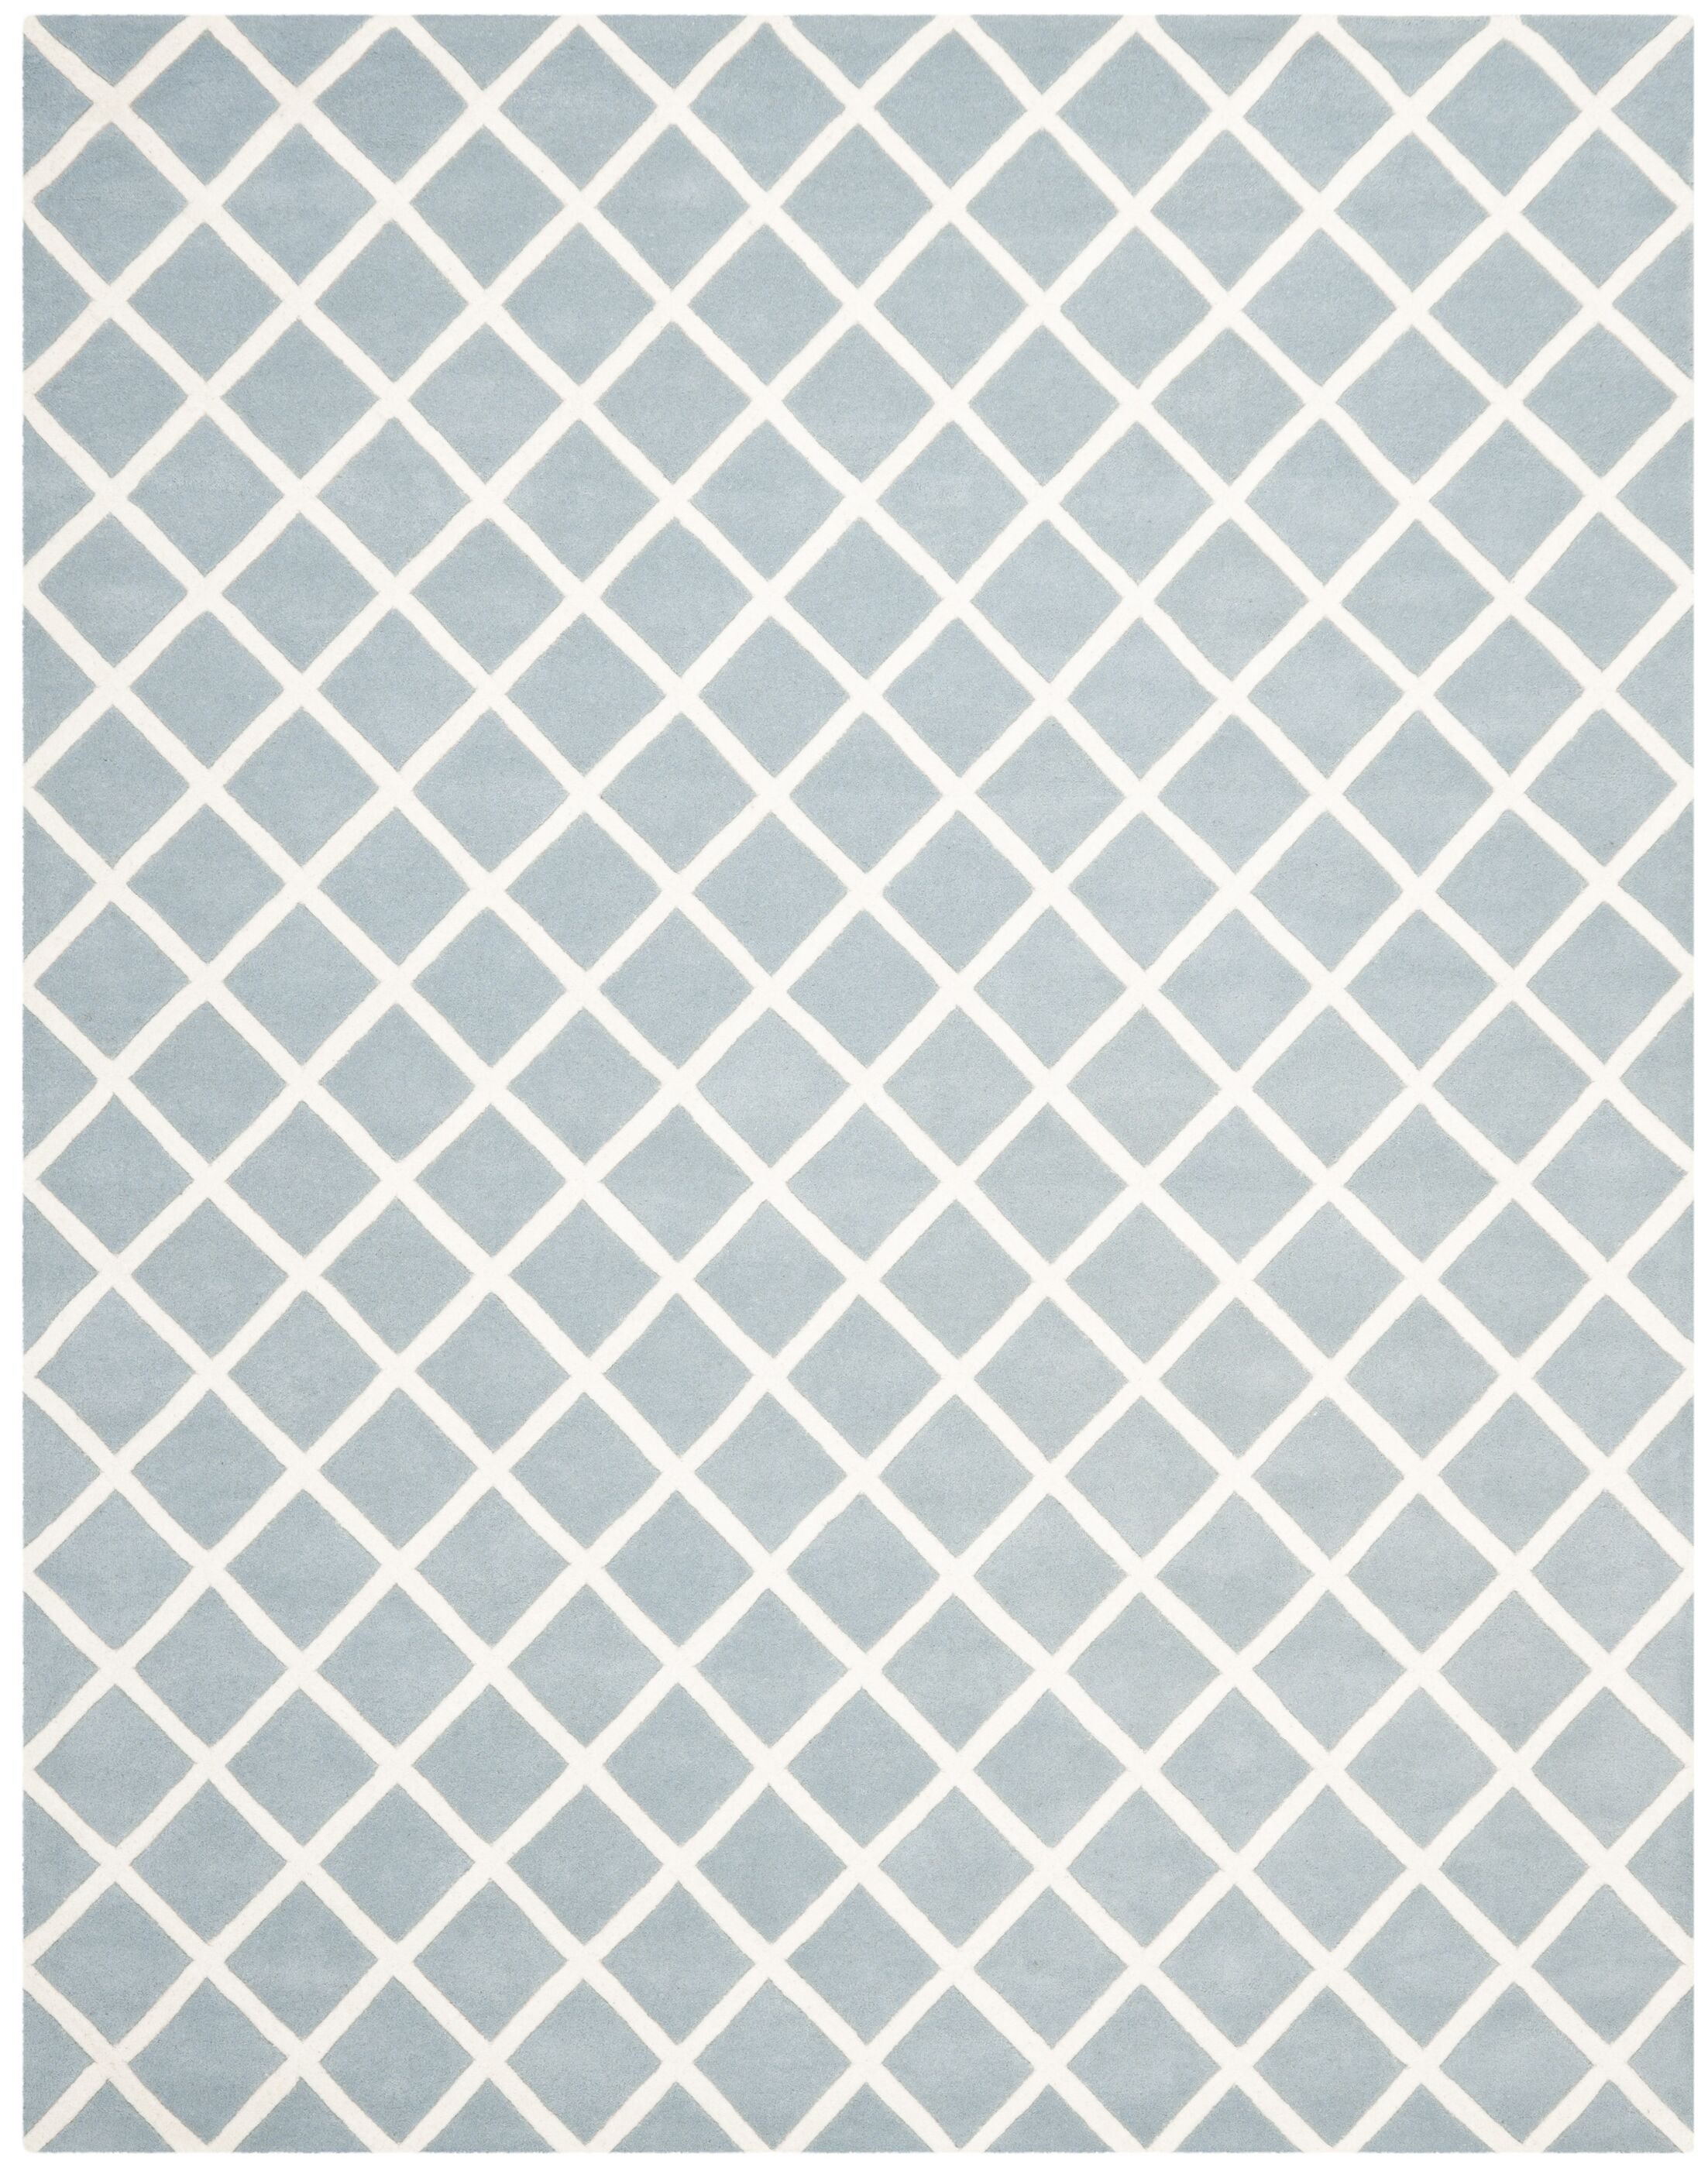 Wilkin Hand-Tufted Light Blue/Ivory Area Rug Rug Size: Rectangle 8'9